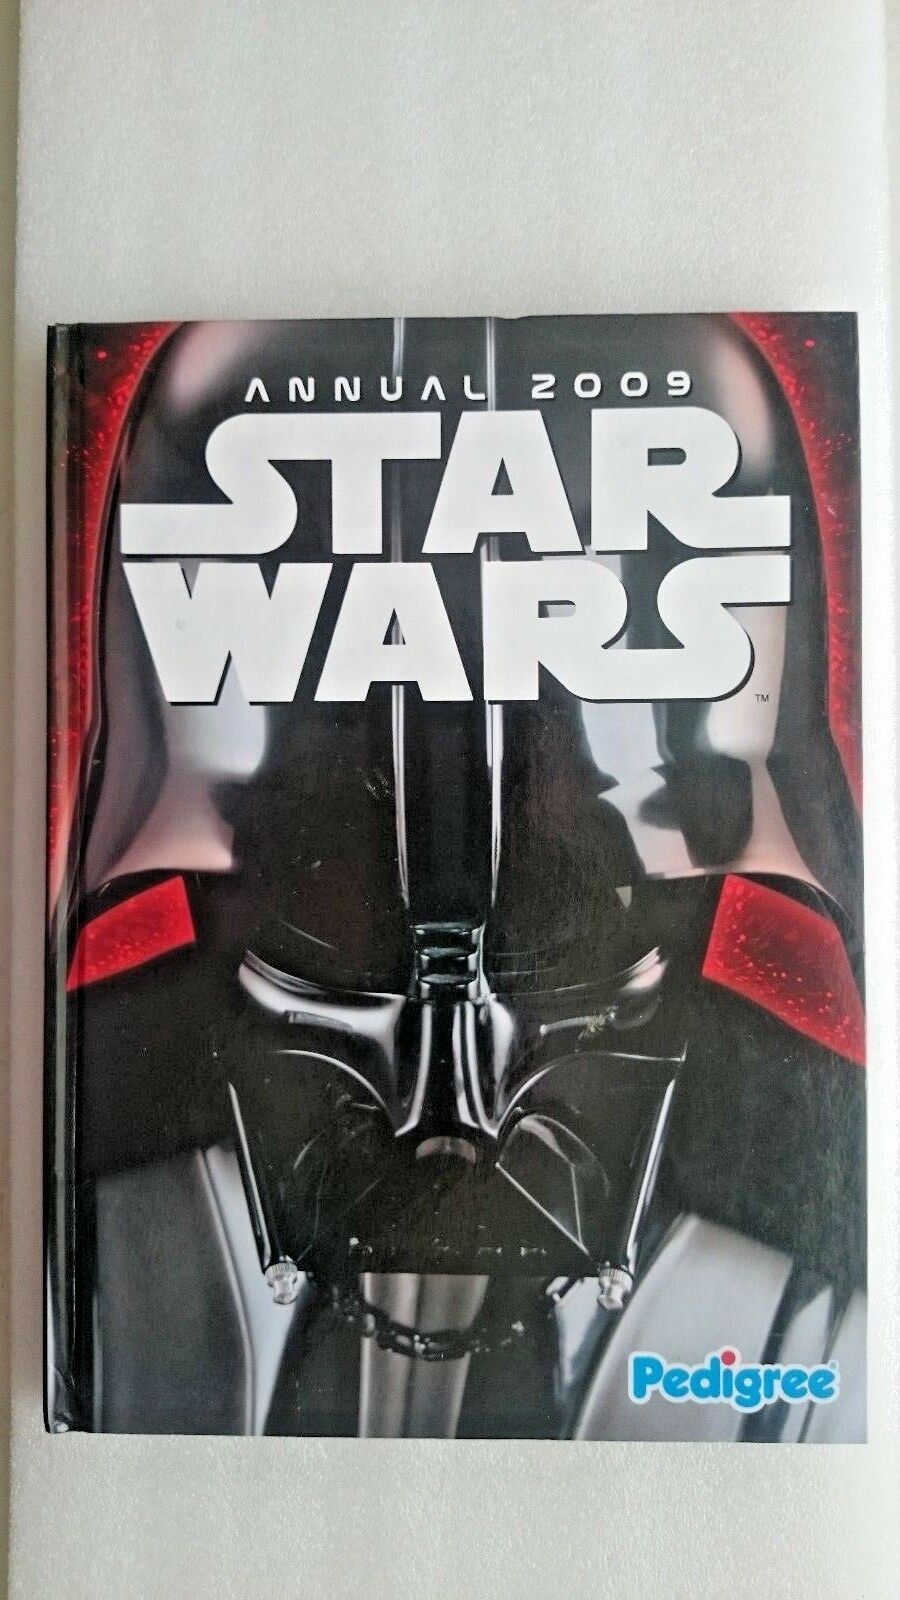 Star Wars  Annual: 2009 by Pedigree Books Ltd (Hardback, 2008)